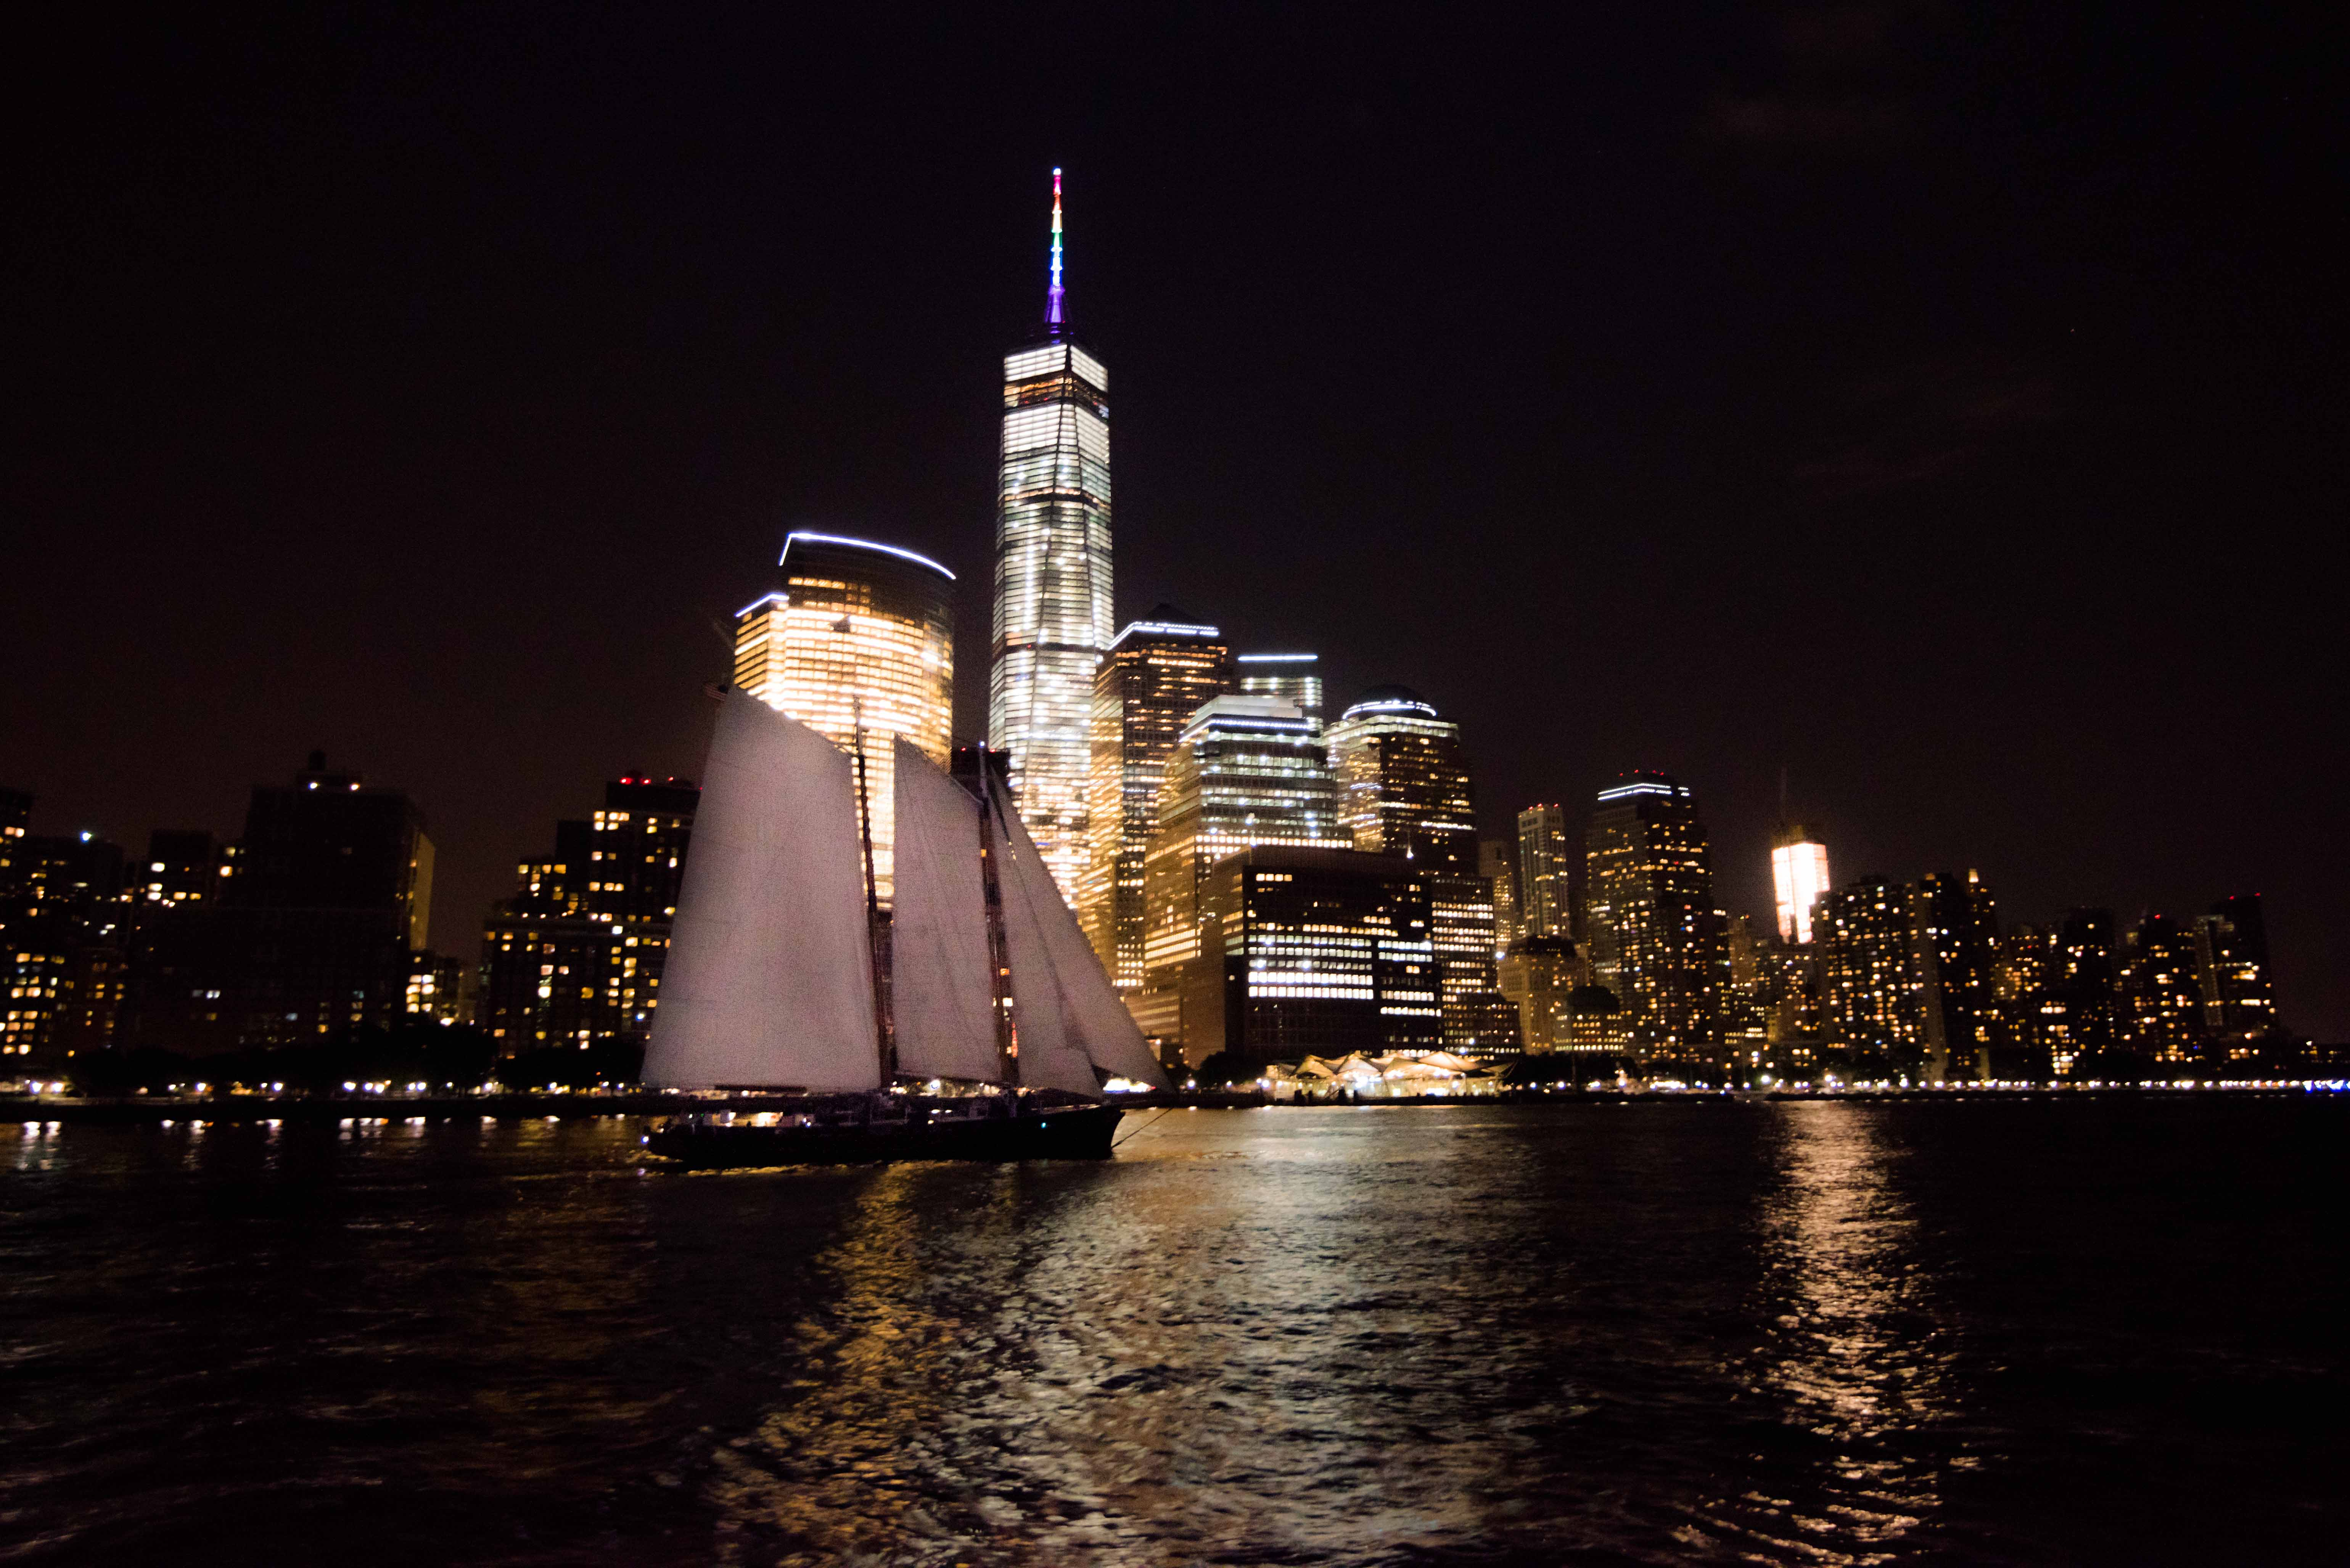 Schooner America 2 0 Nyc Sunset Sail Amp Sightseeing Boat